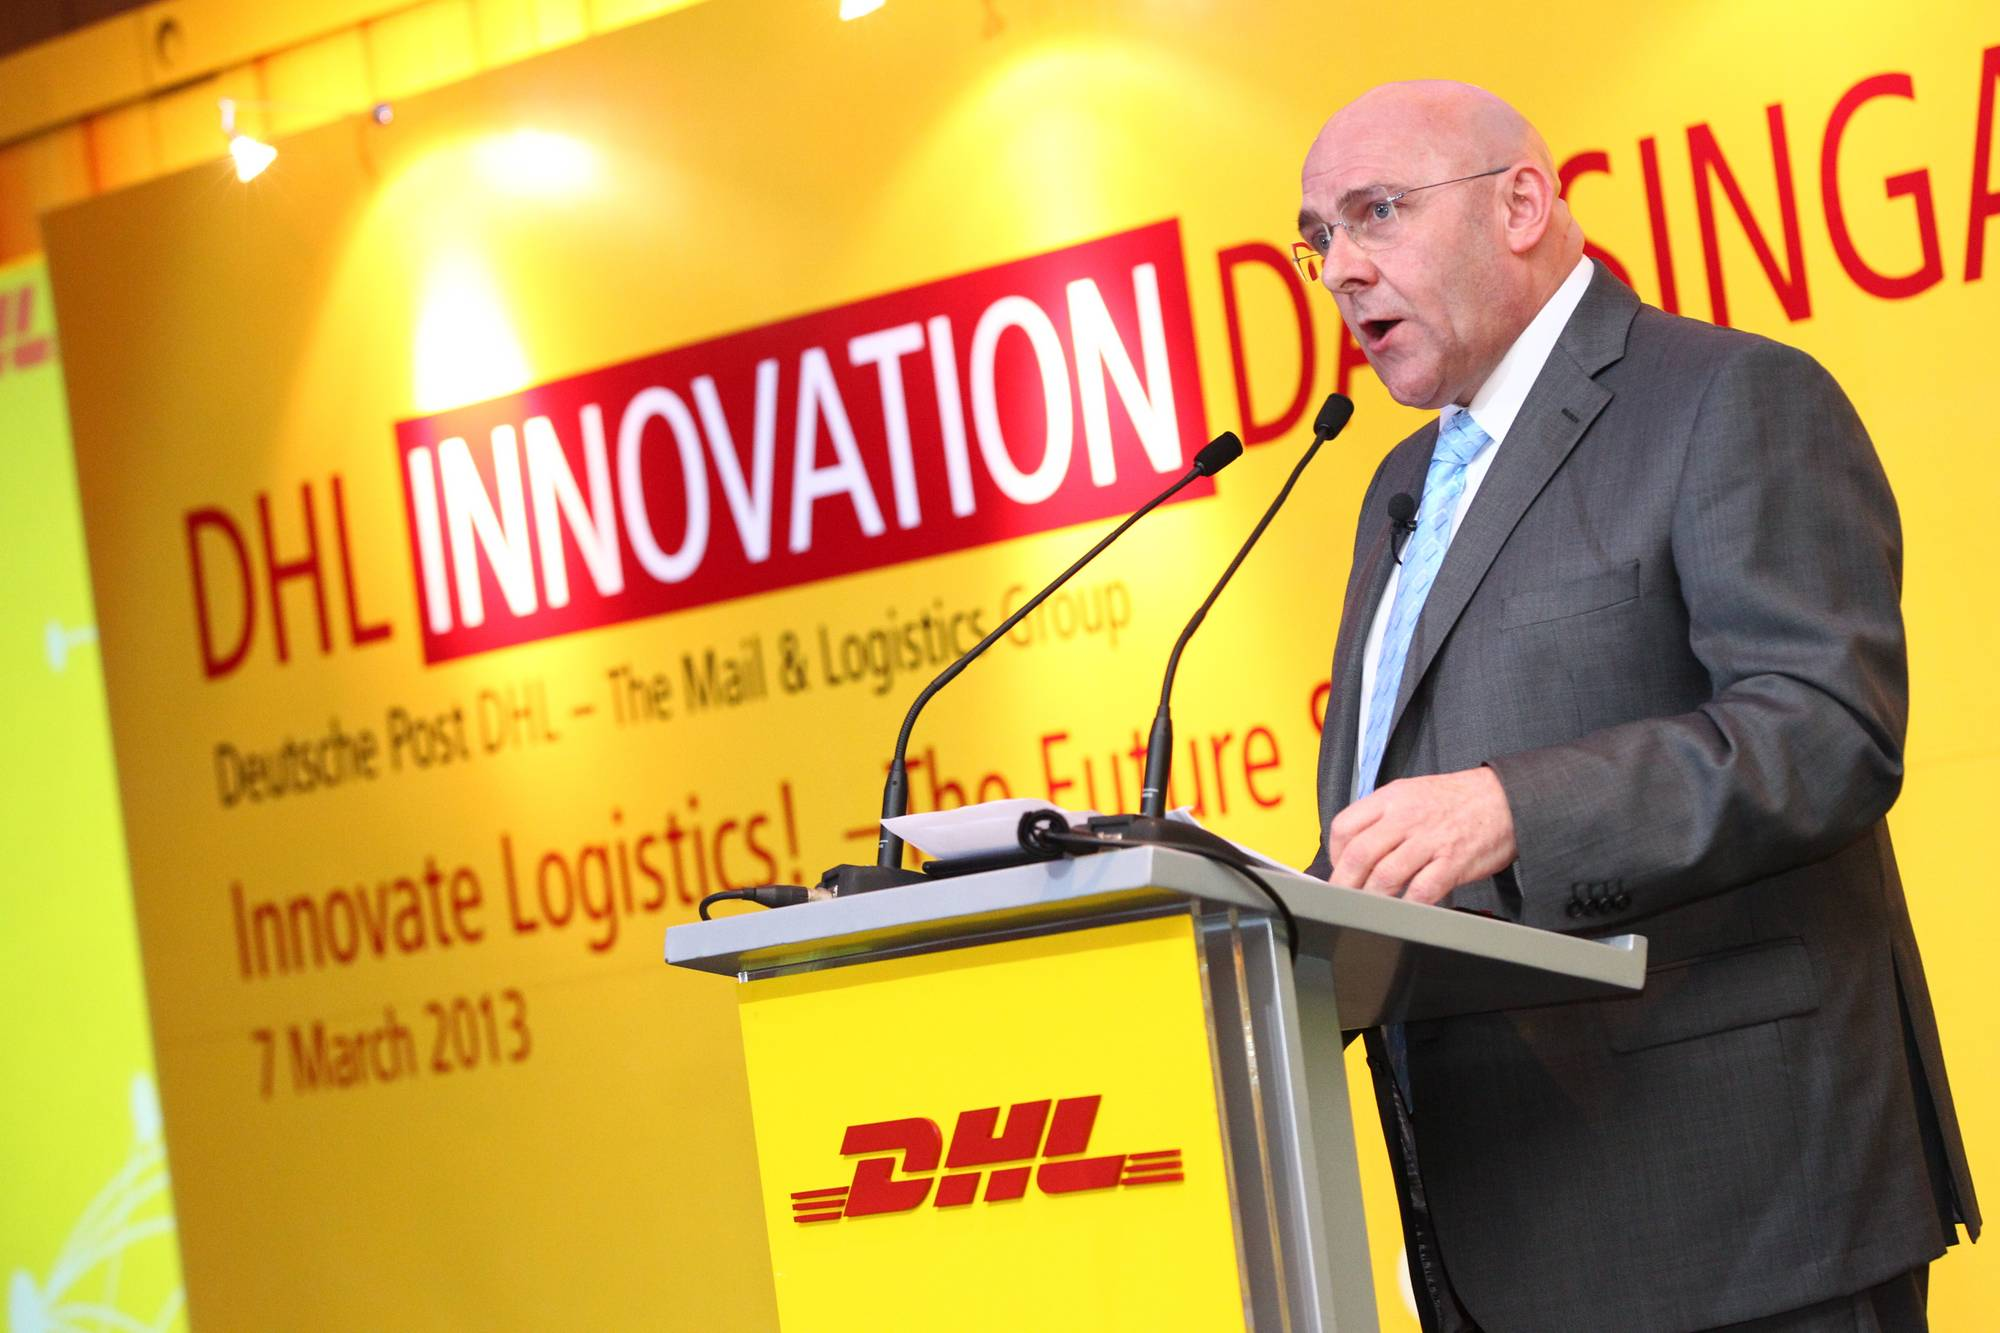 2013-03 SIN DHL Innovation Day@PanPacific (1).jpg